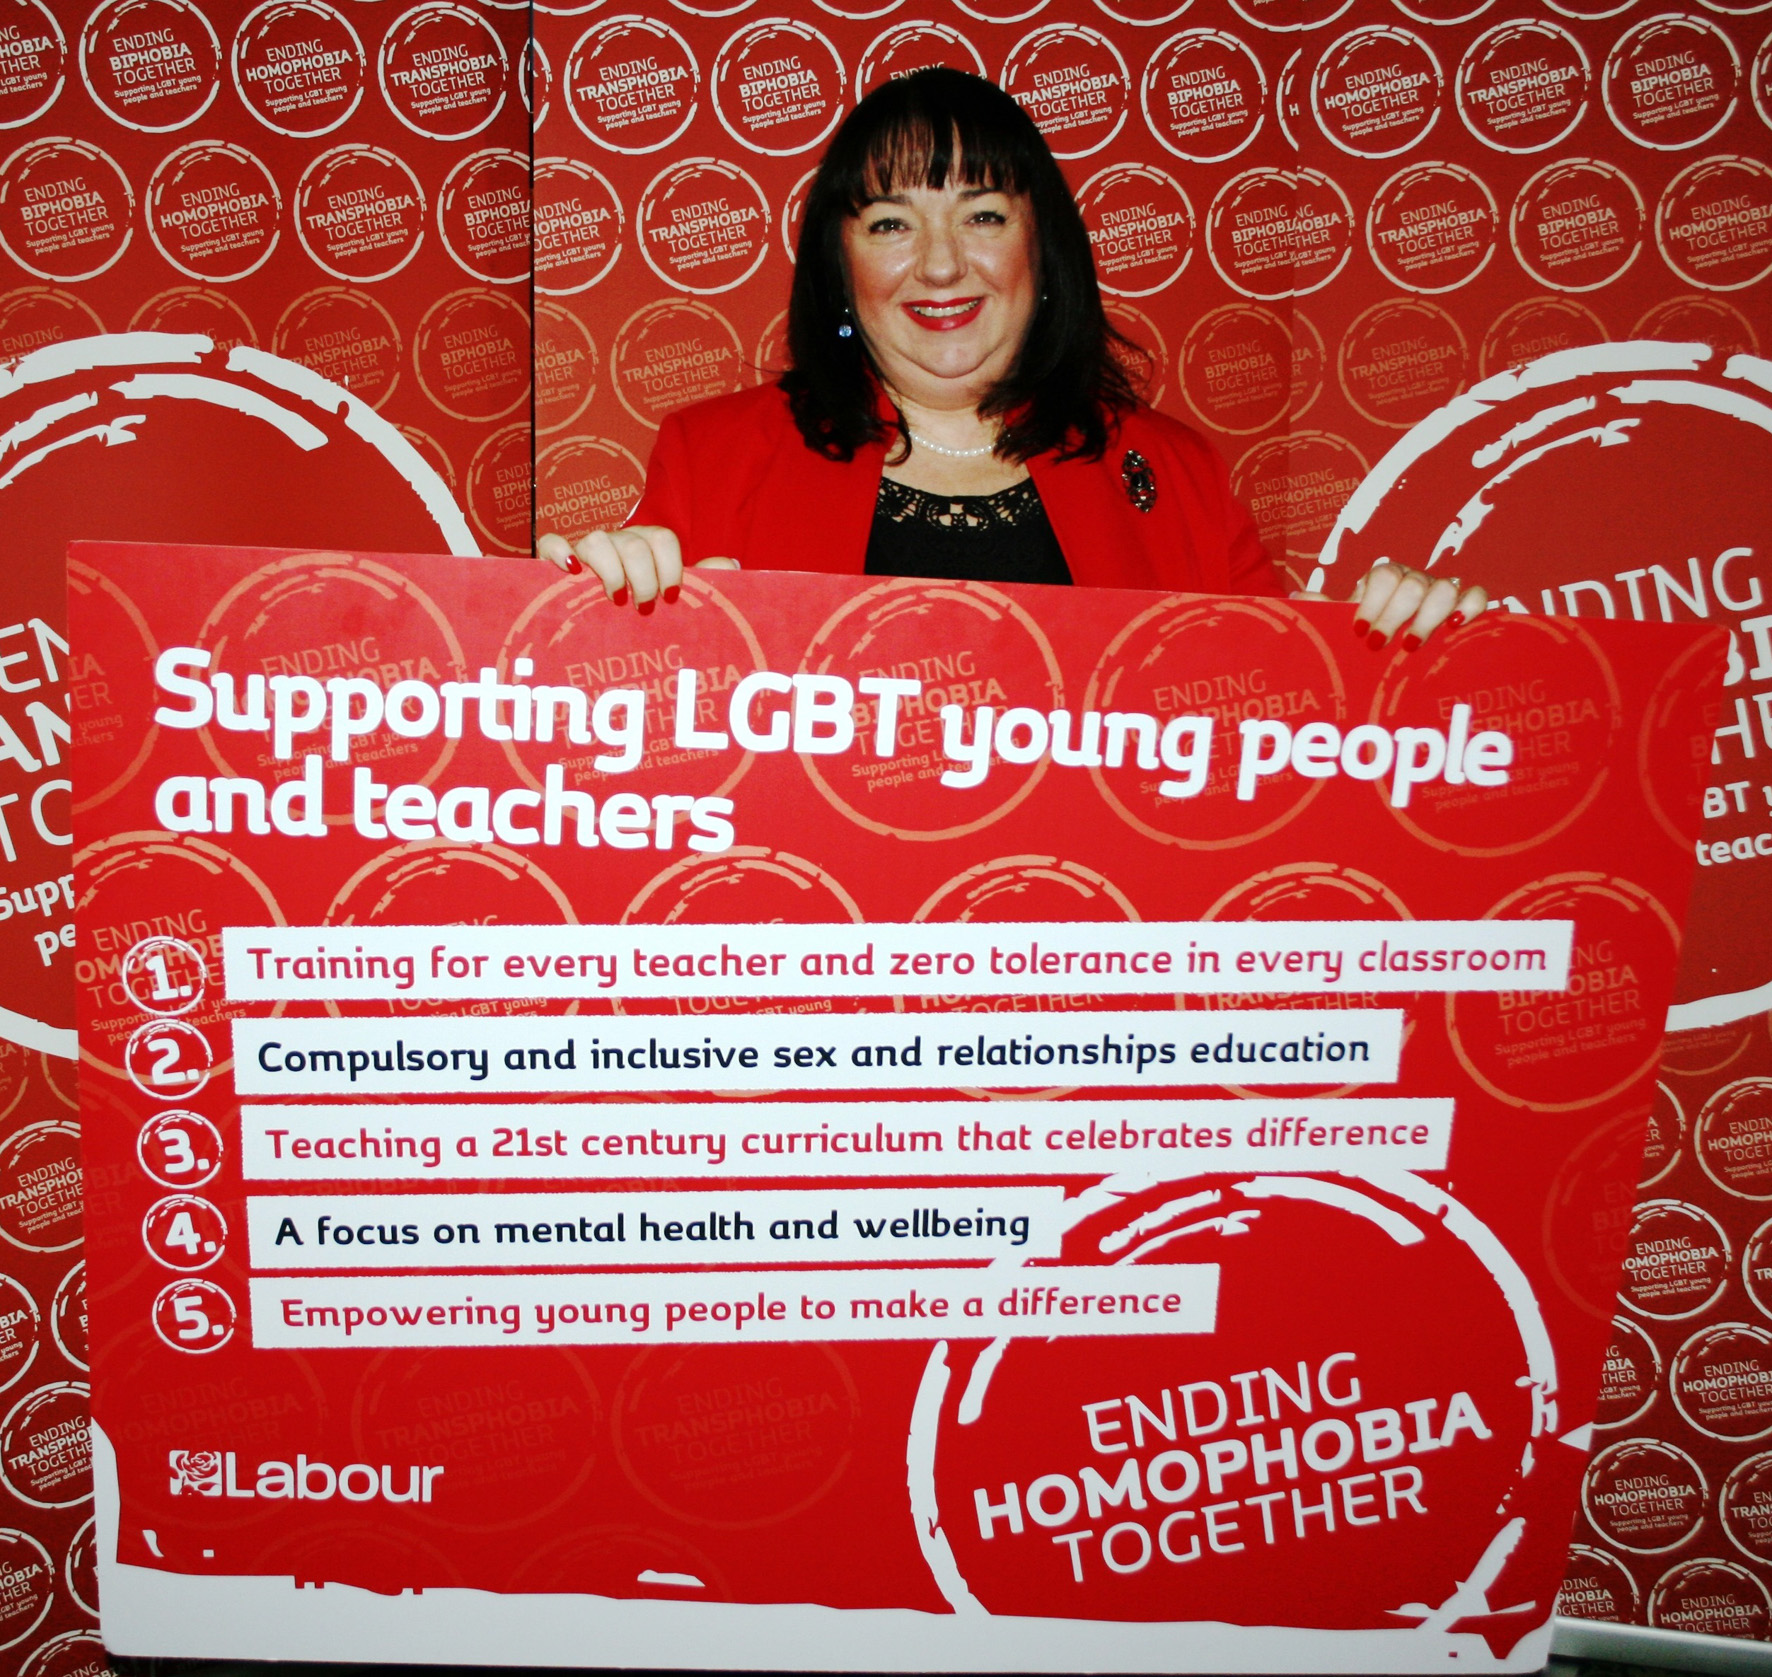 Labours pledge to eradicate homophobic bullying in the classroom